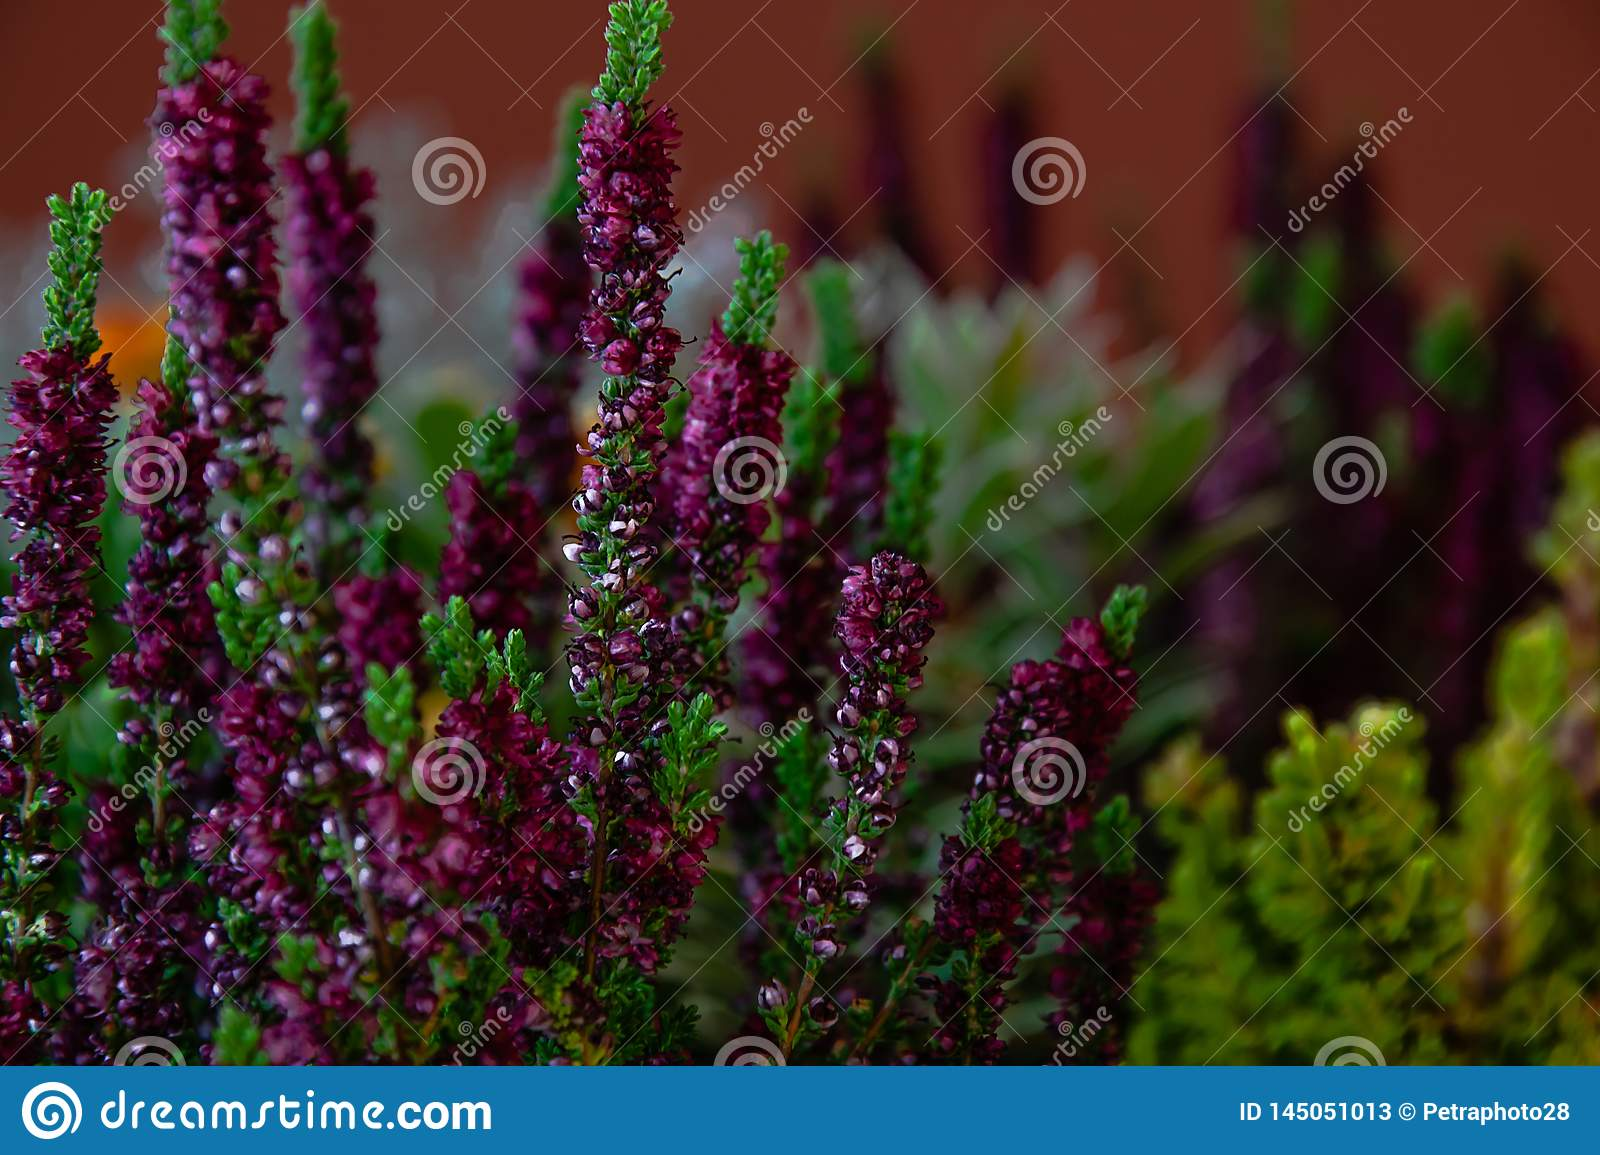 Small lavender growing inside a large flower pot inside a house